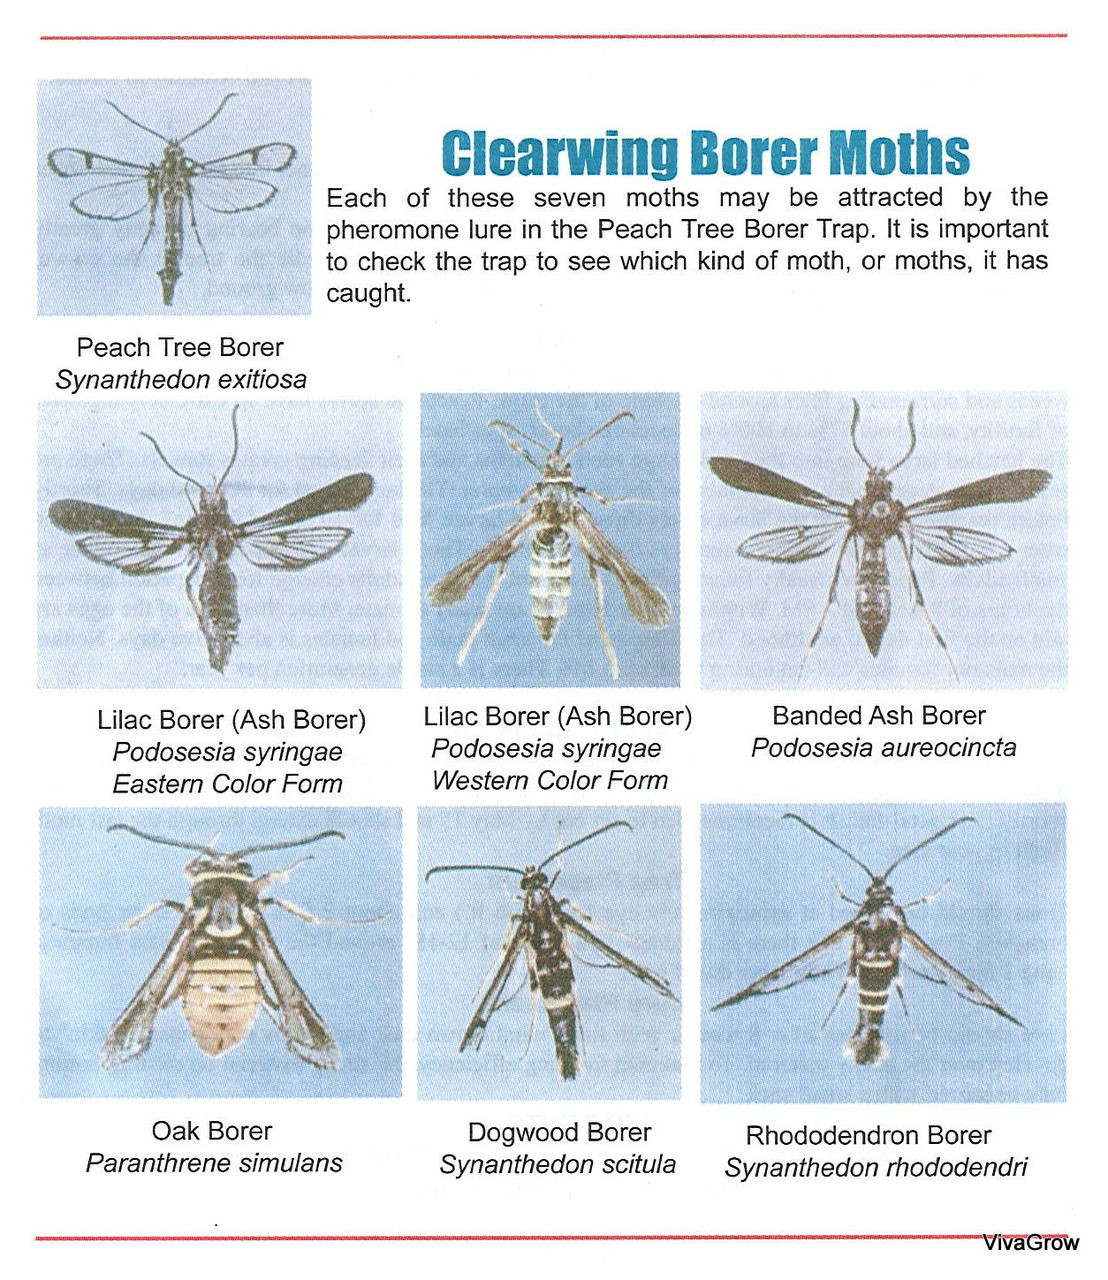 Effective against many Clearwing Borer Moth species!